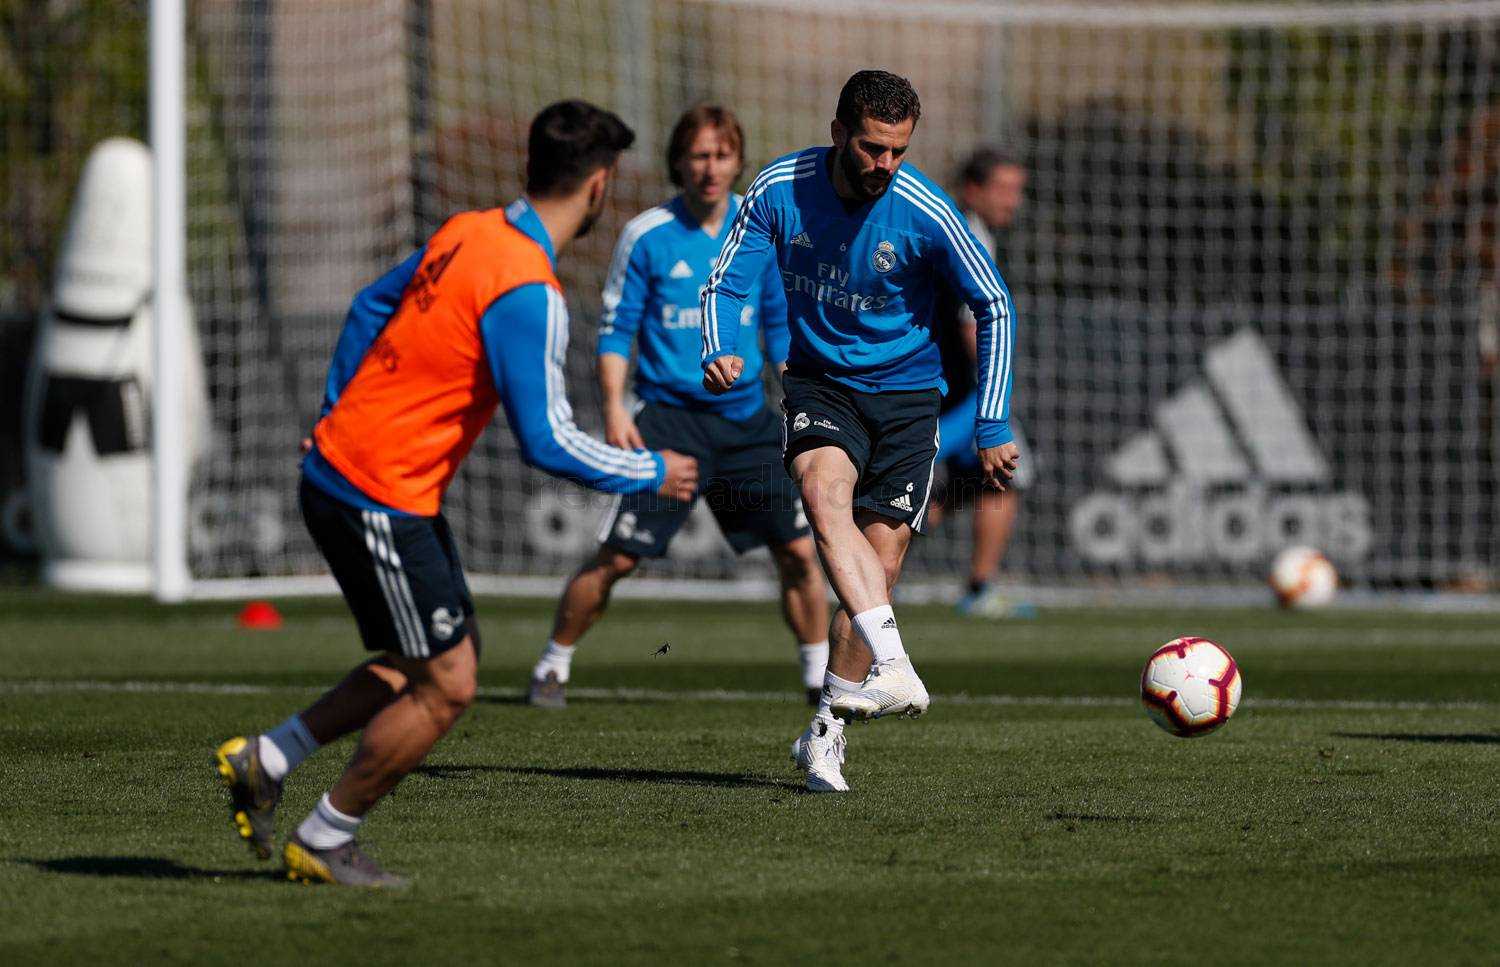 Real Madrid - Entrenamiento del Real Madrid - 12-04-2019